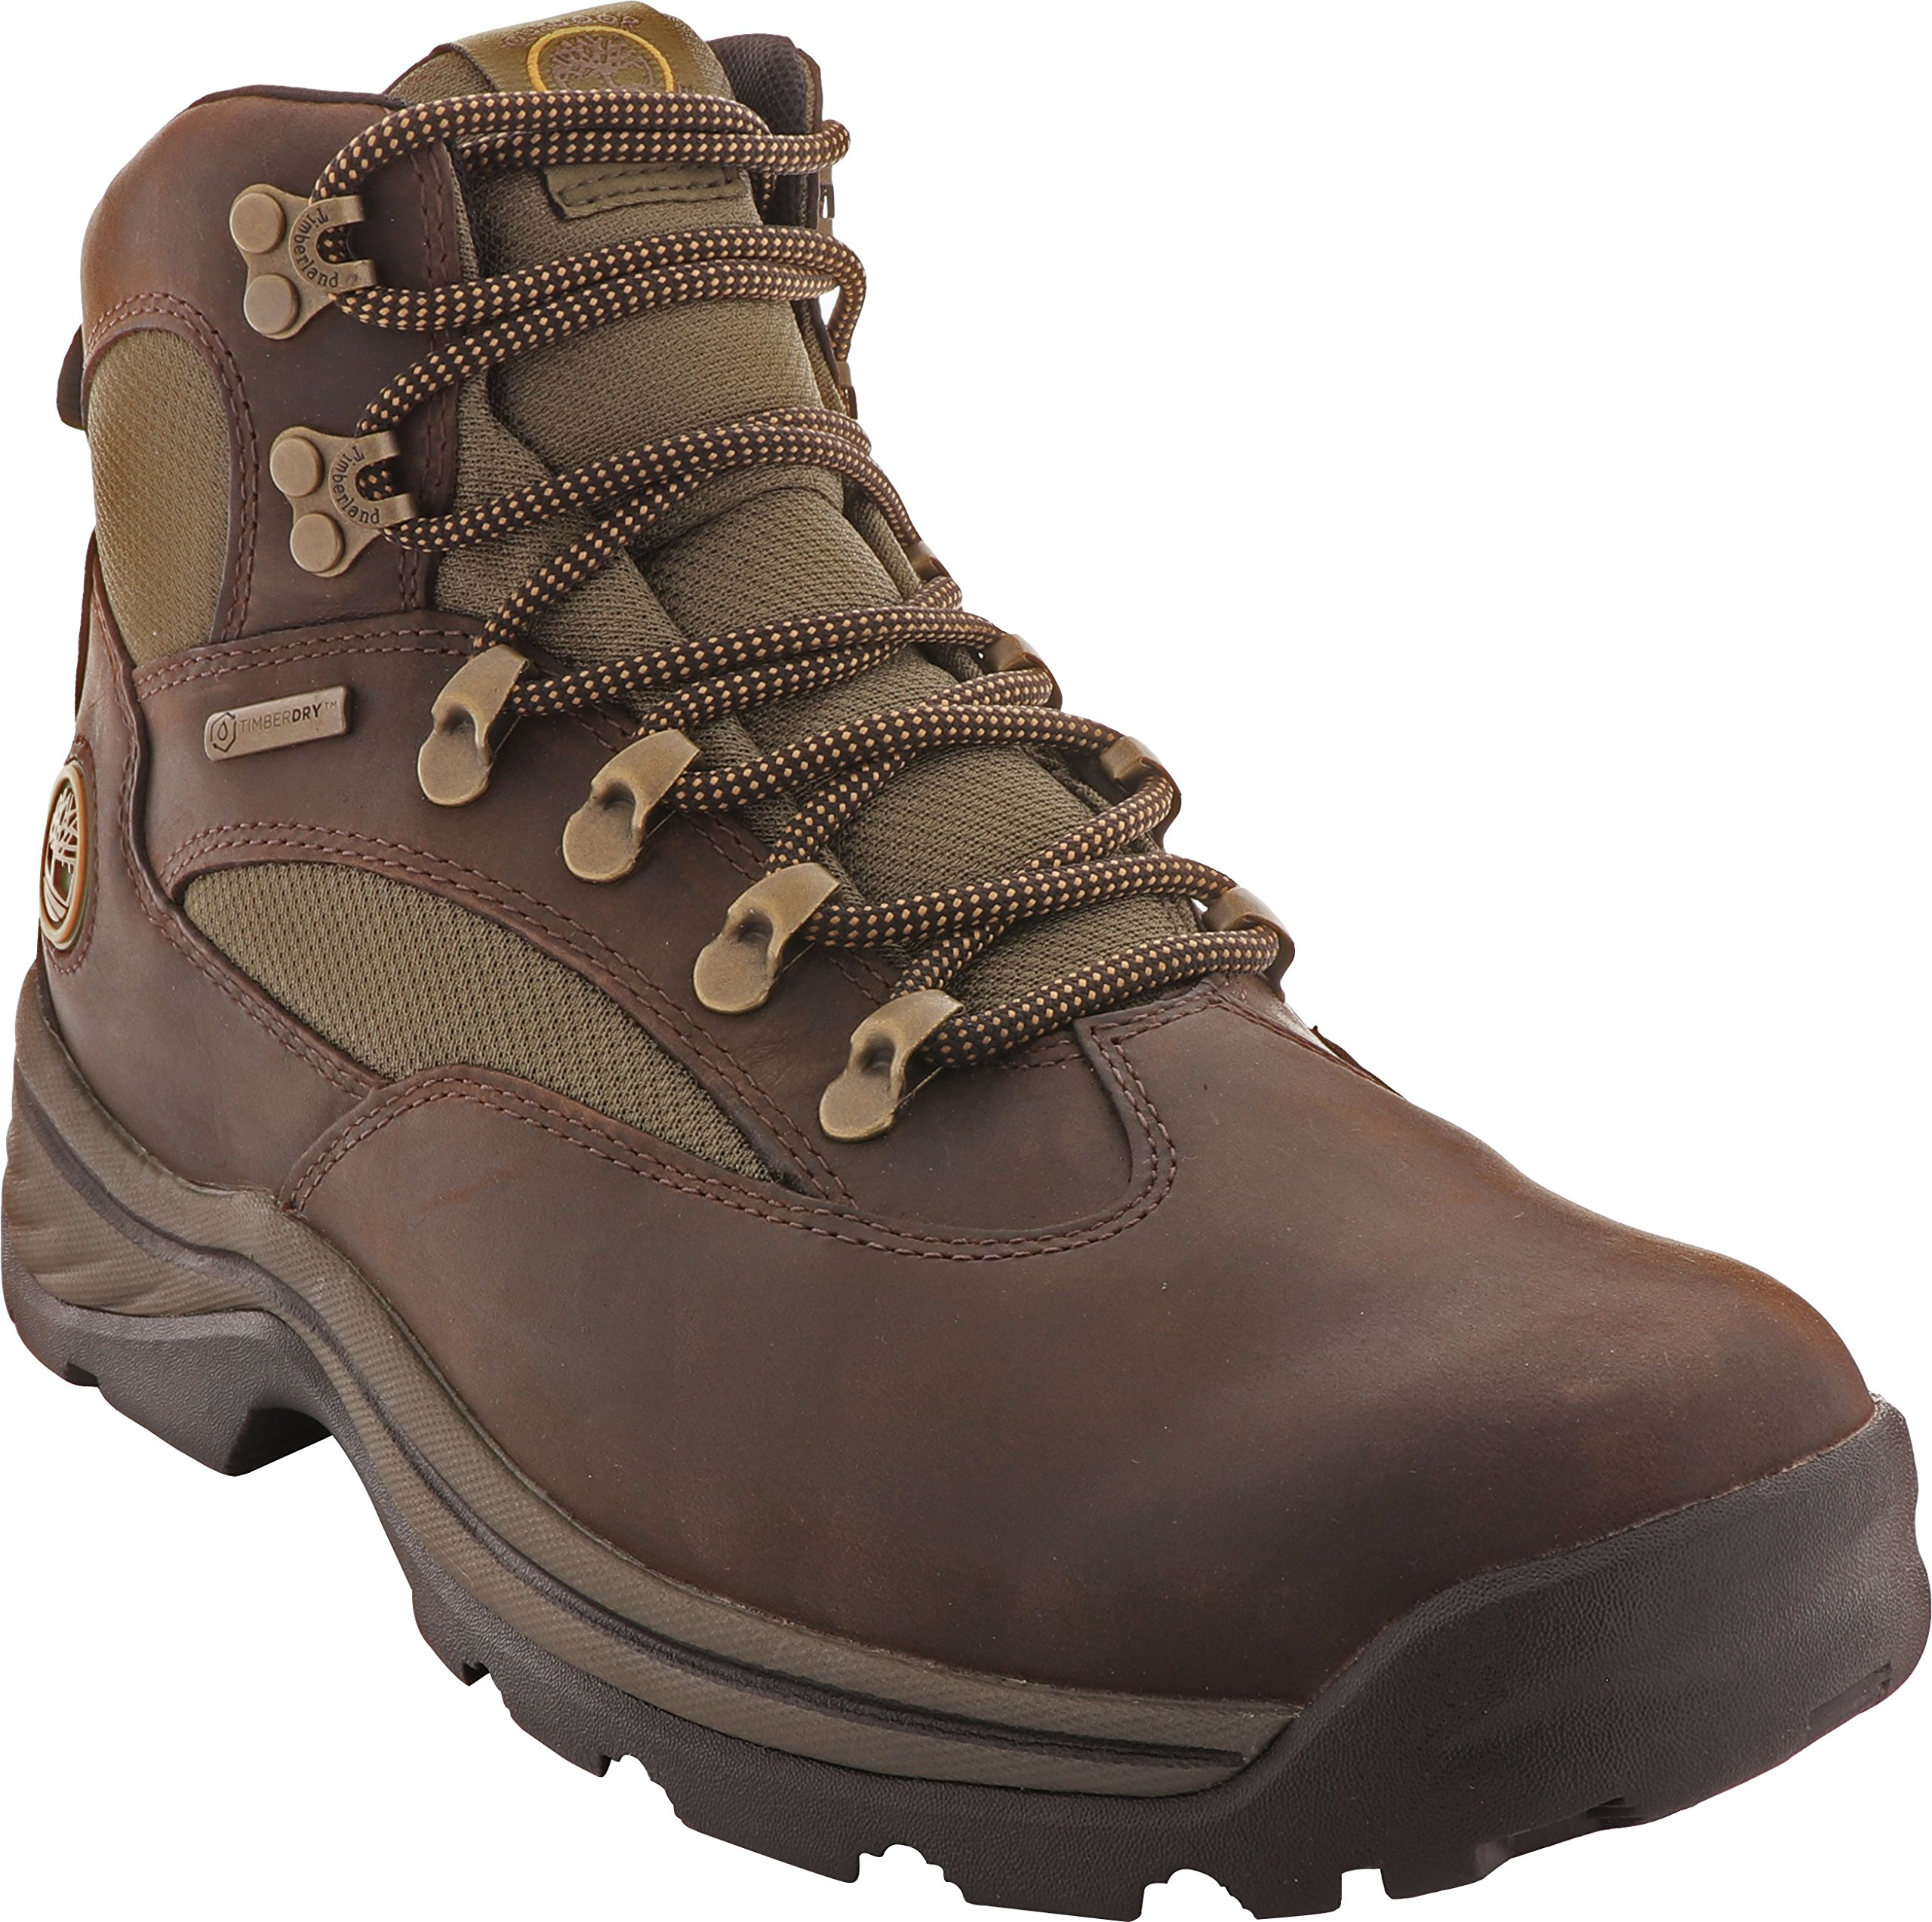 bcb06e5b684 Timberland Chocorua Trail Mid w/Gore-Tex Membrane Boot - Men's Dark Brown  Full-Grain 8